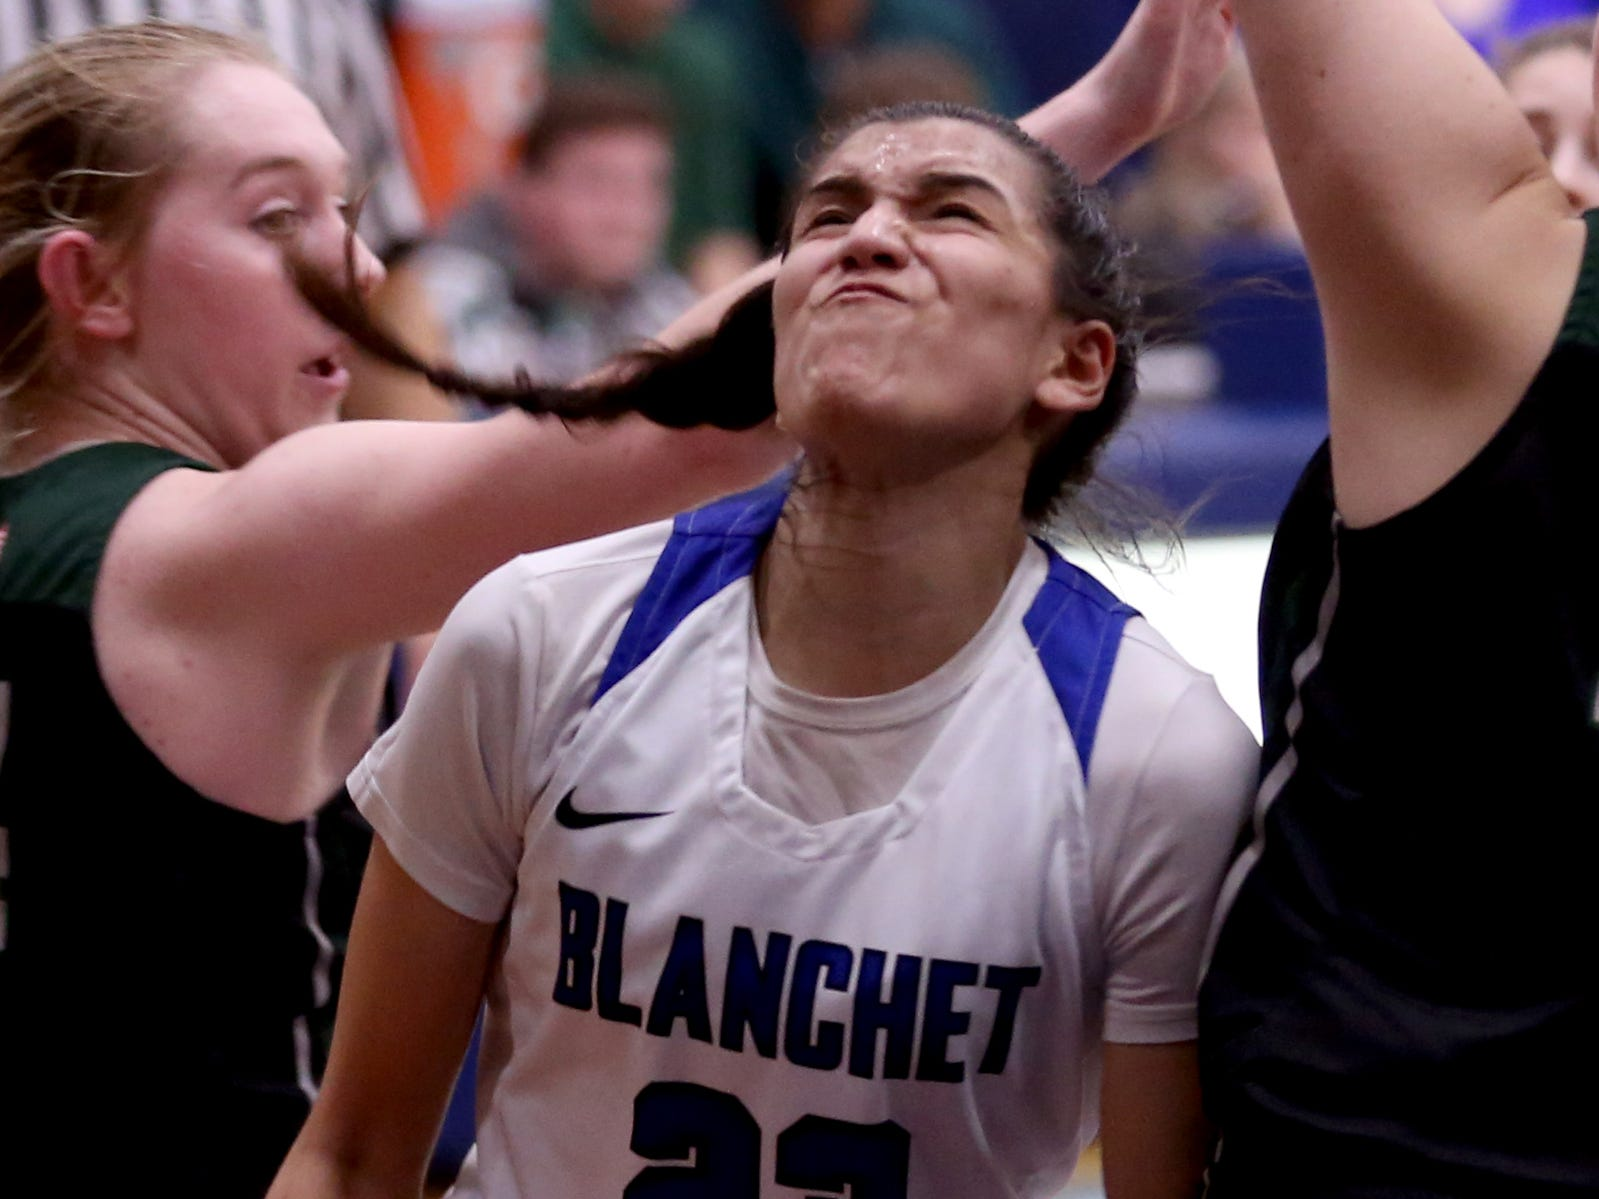 Blanchet Catholic's Ana Coronado (23) forces her way to the basket in the second half of the Salem Academy vs. Blanchet Catholic girls basketball game at Blanchet Catholic School in Salem on Friday, Jan. 18, 2019. Blanchet Catholic won the gam 48-40.